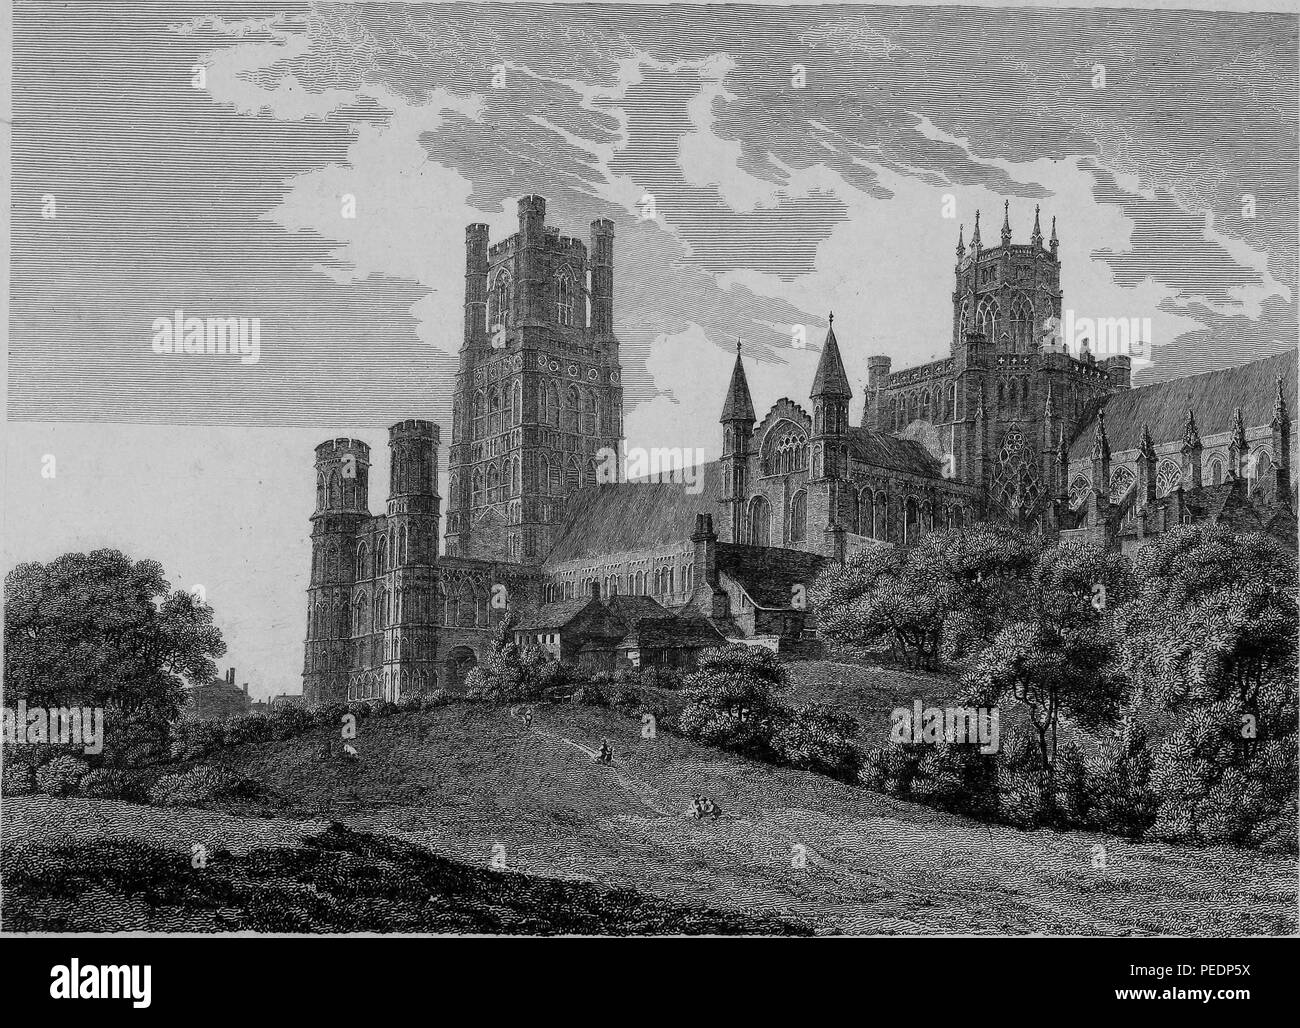 Black and white print showing an angled view of the exterior facade of 'Ely Cathedral, ' a Romanesque and Gothic style Anglican cathedral located in the city of Ely, Cambridgeshire, England, with rolling hills and trees in the foreground, engraved by William Byrne after a drawing by T Hearne, 1825. Courtesy Internet Archive. () Stock Photo